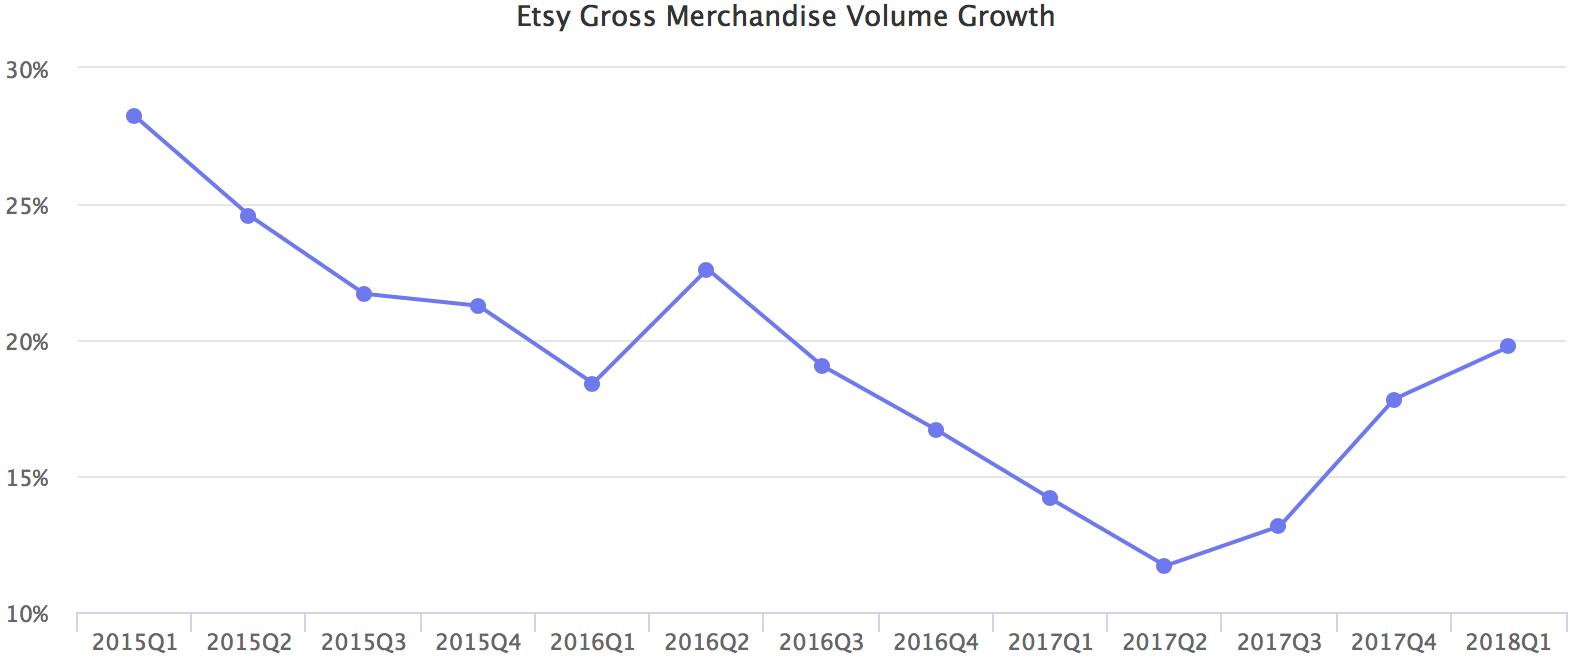 Etsy Gross Merchandise Volume Growth